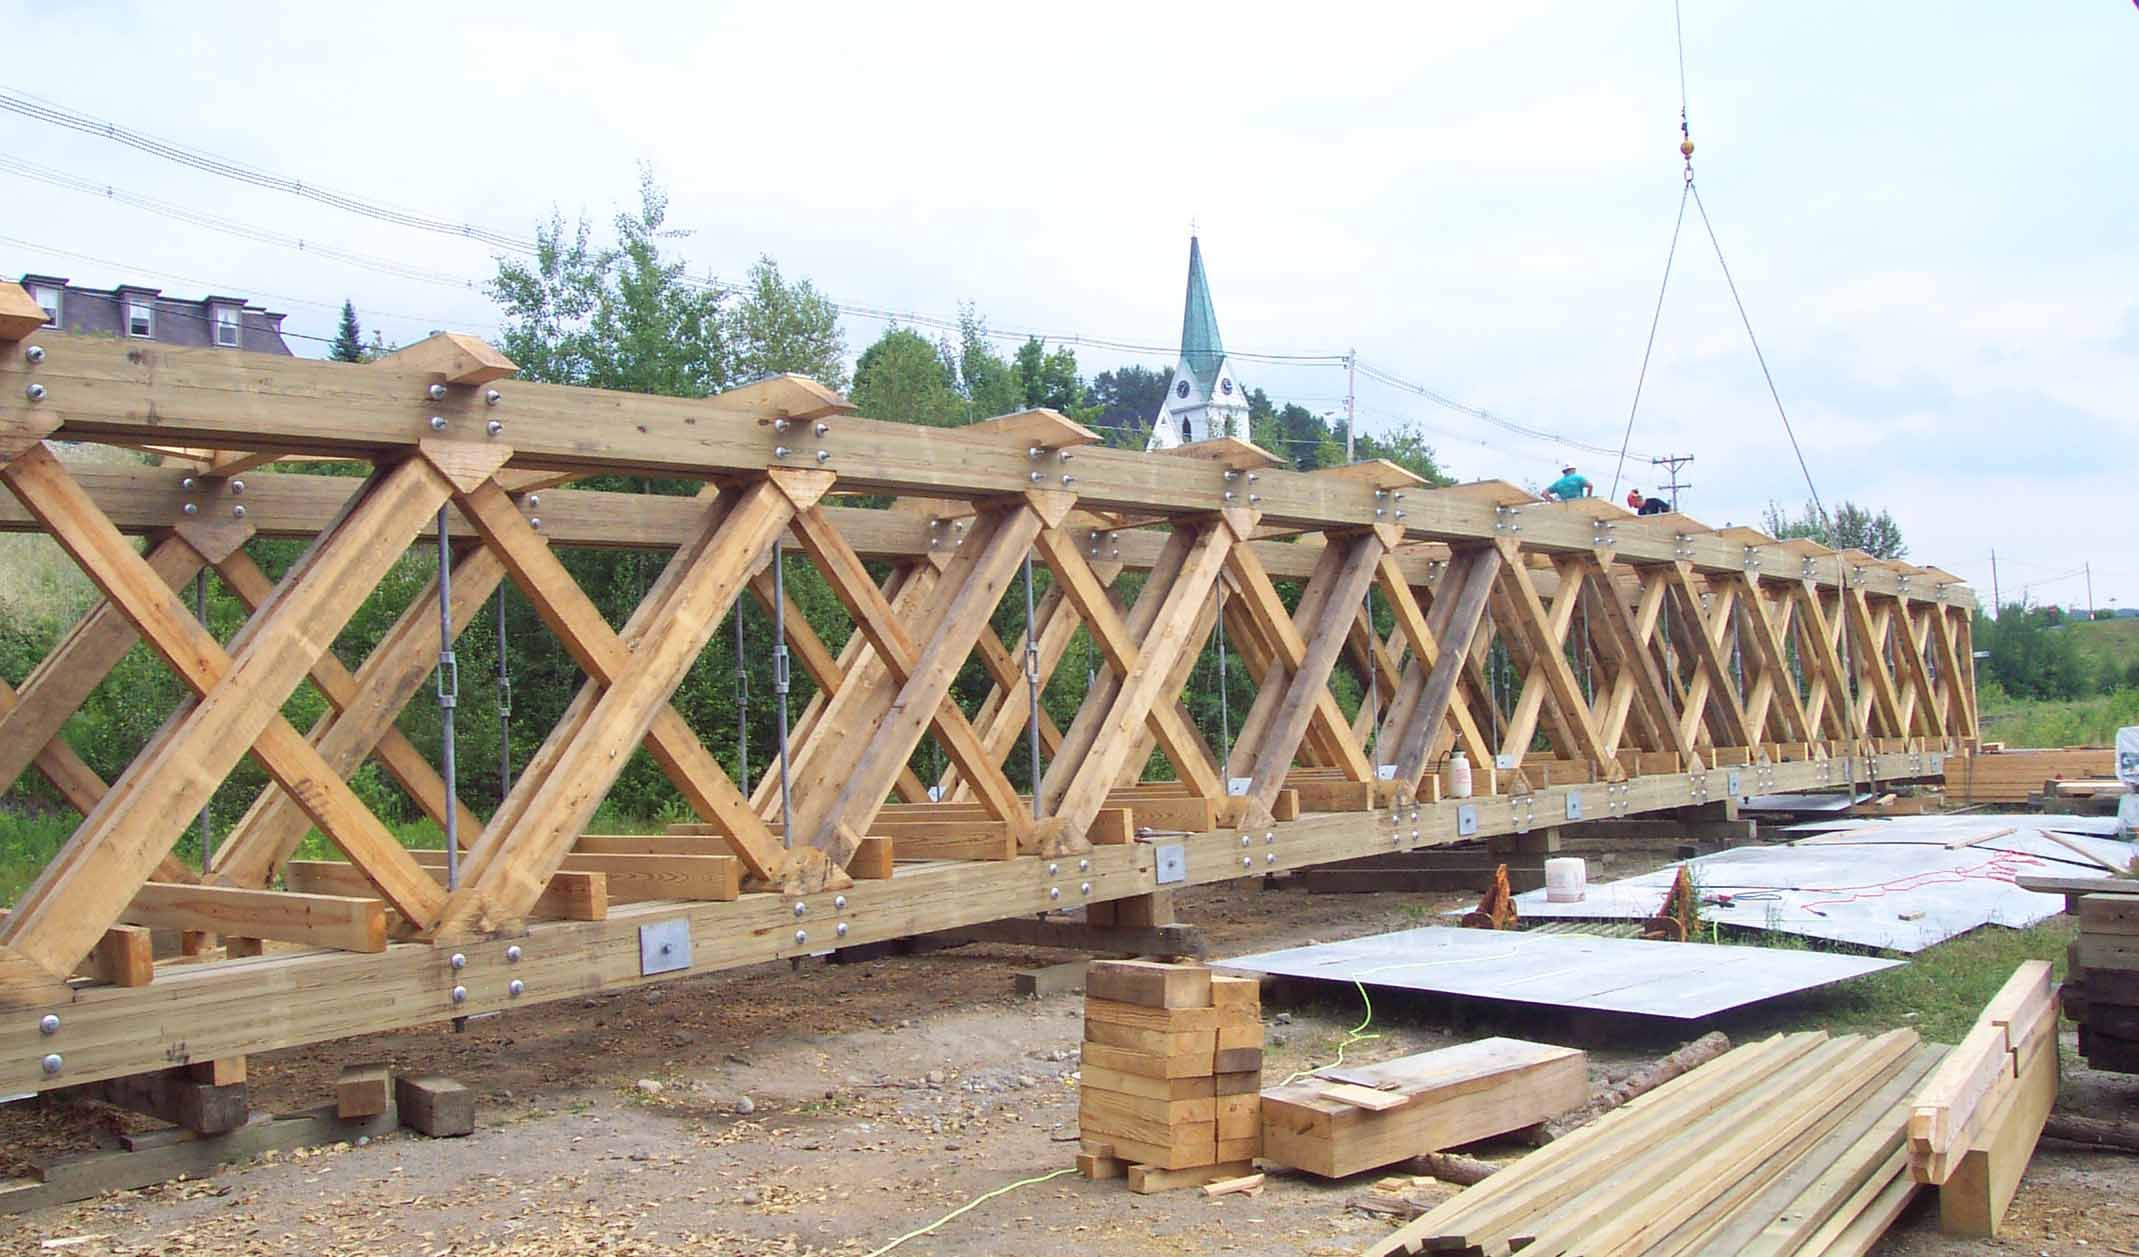 R sultats de recherche d 39 images pour pratt wood girder for Timber frame bridge